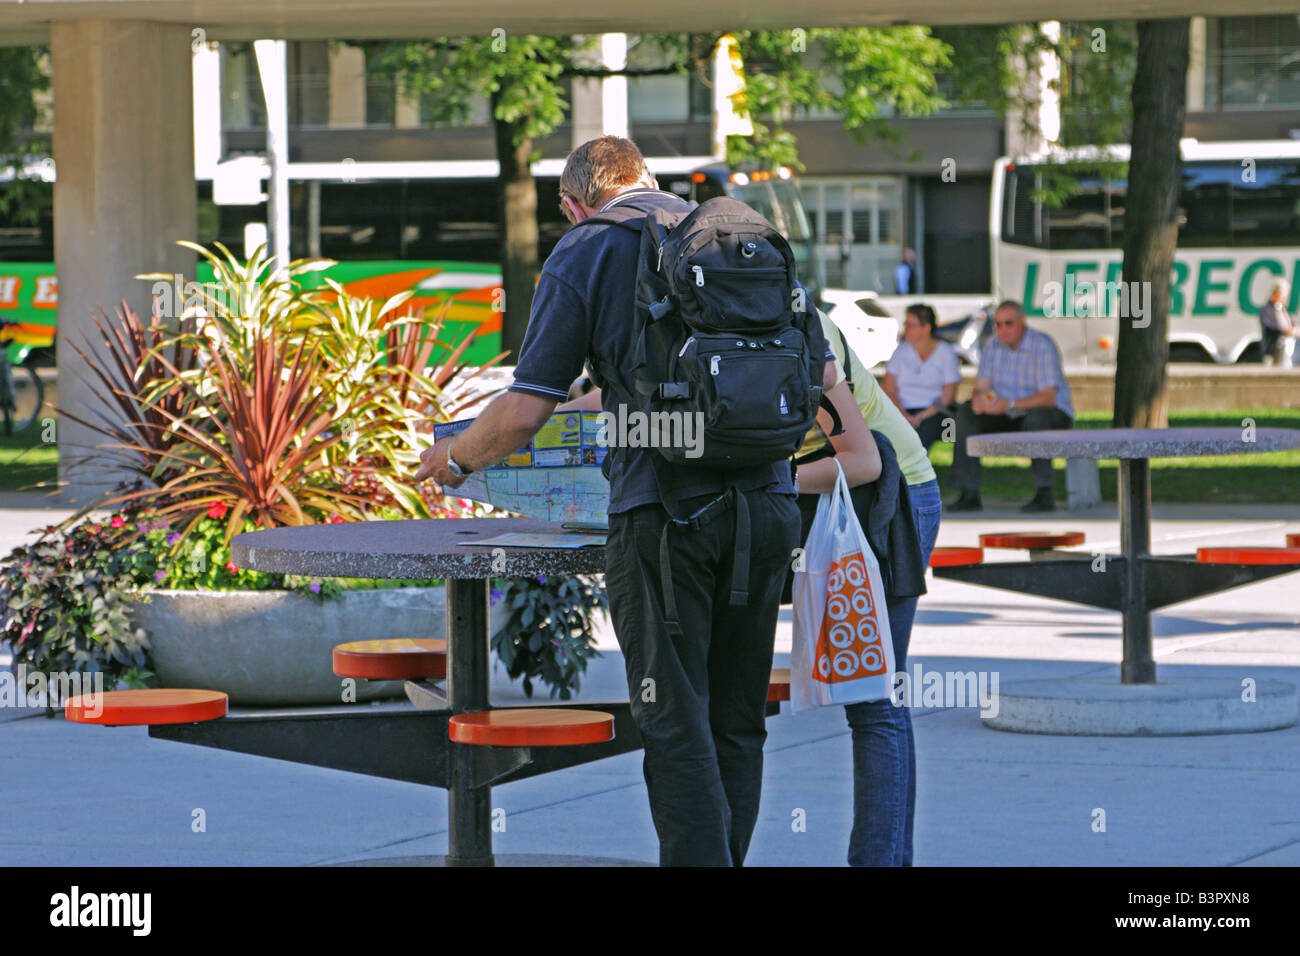 Tourists checking map in Nathan Phillips Square near Queen Street West in Toronto - Stock Image